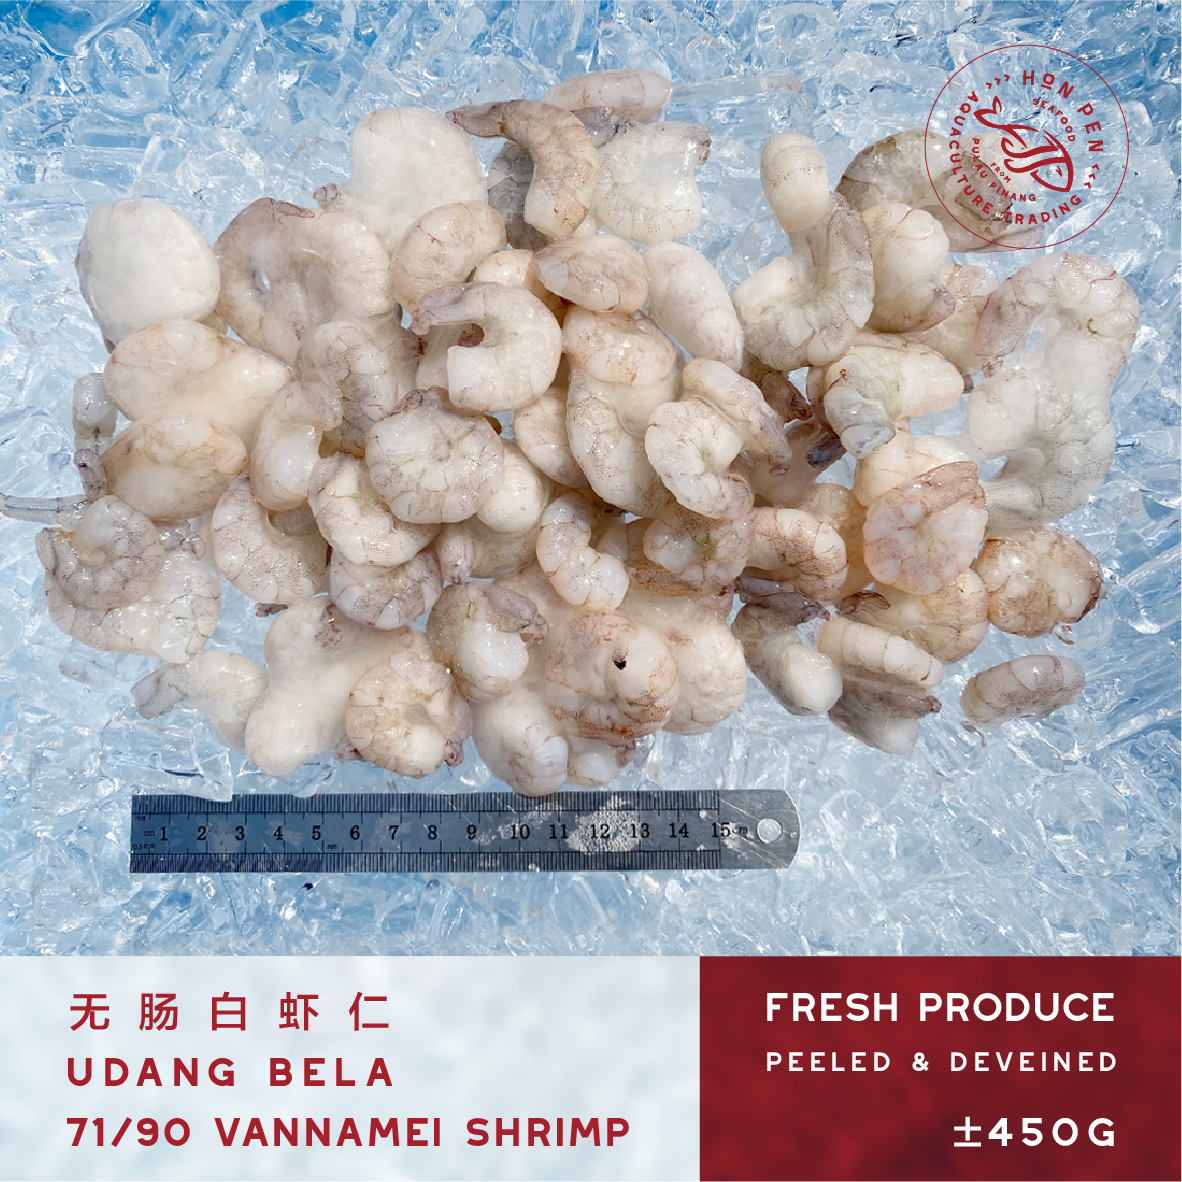 VANNAMEI SHRIMP 71/90 无肠白虾仁 UDANG BELA (Peeled & deveined) ±450g